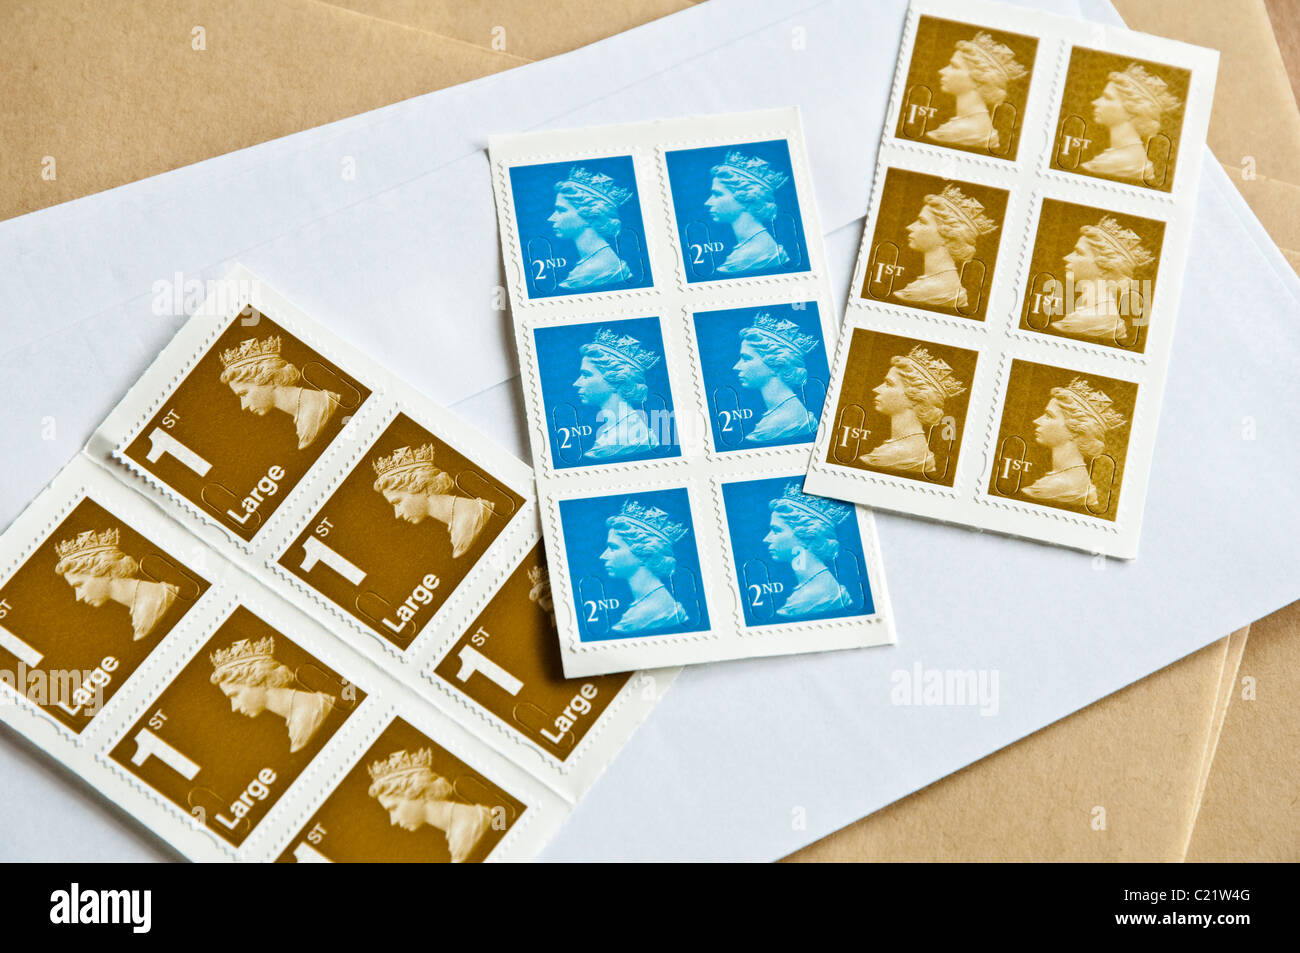 A range of UK stamps and envelopes - including Large 1st Class, 2nd Class and 1st Class postage stamps. - Stock Image